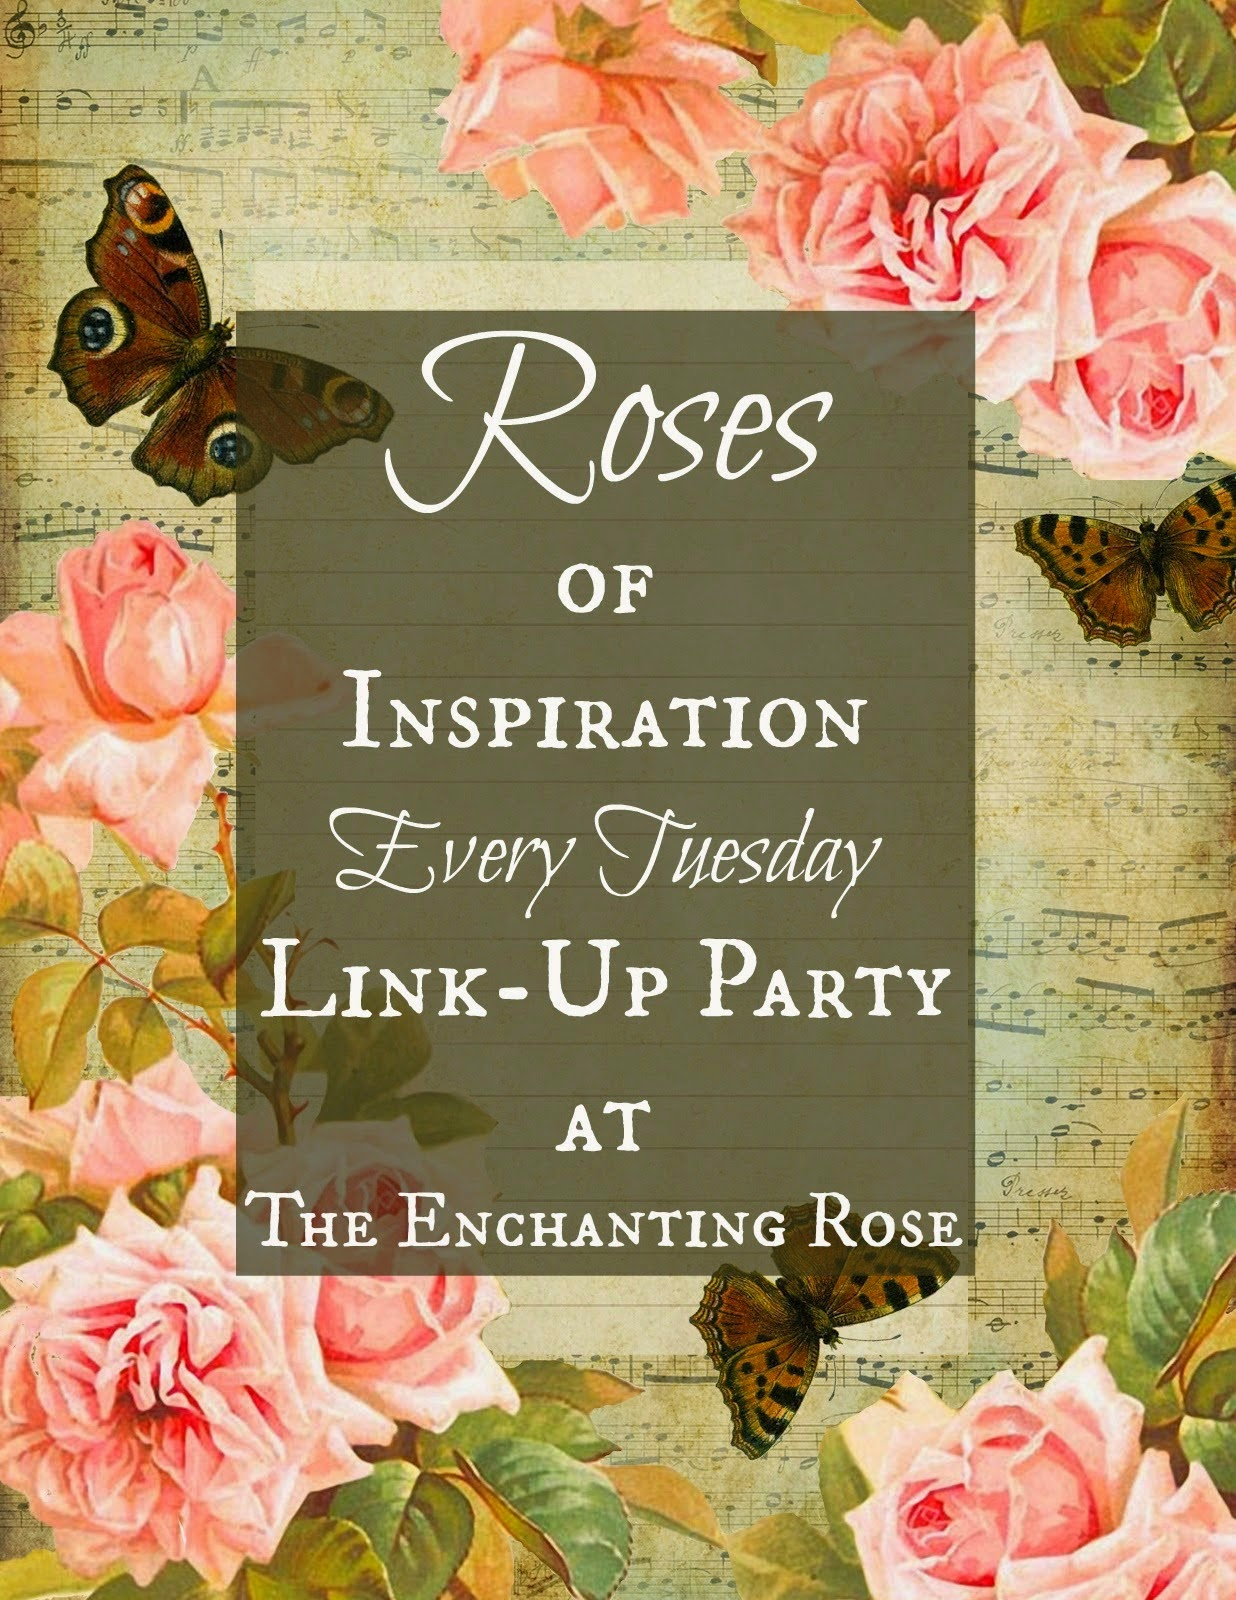 http://theenchantingrose.blogspot.in/2015/02/roses-of-inspiration-linkup-5.html